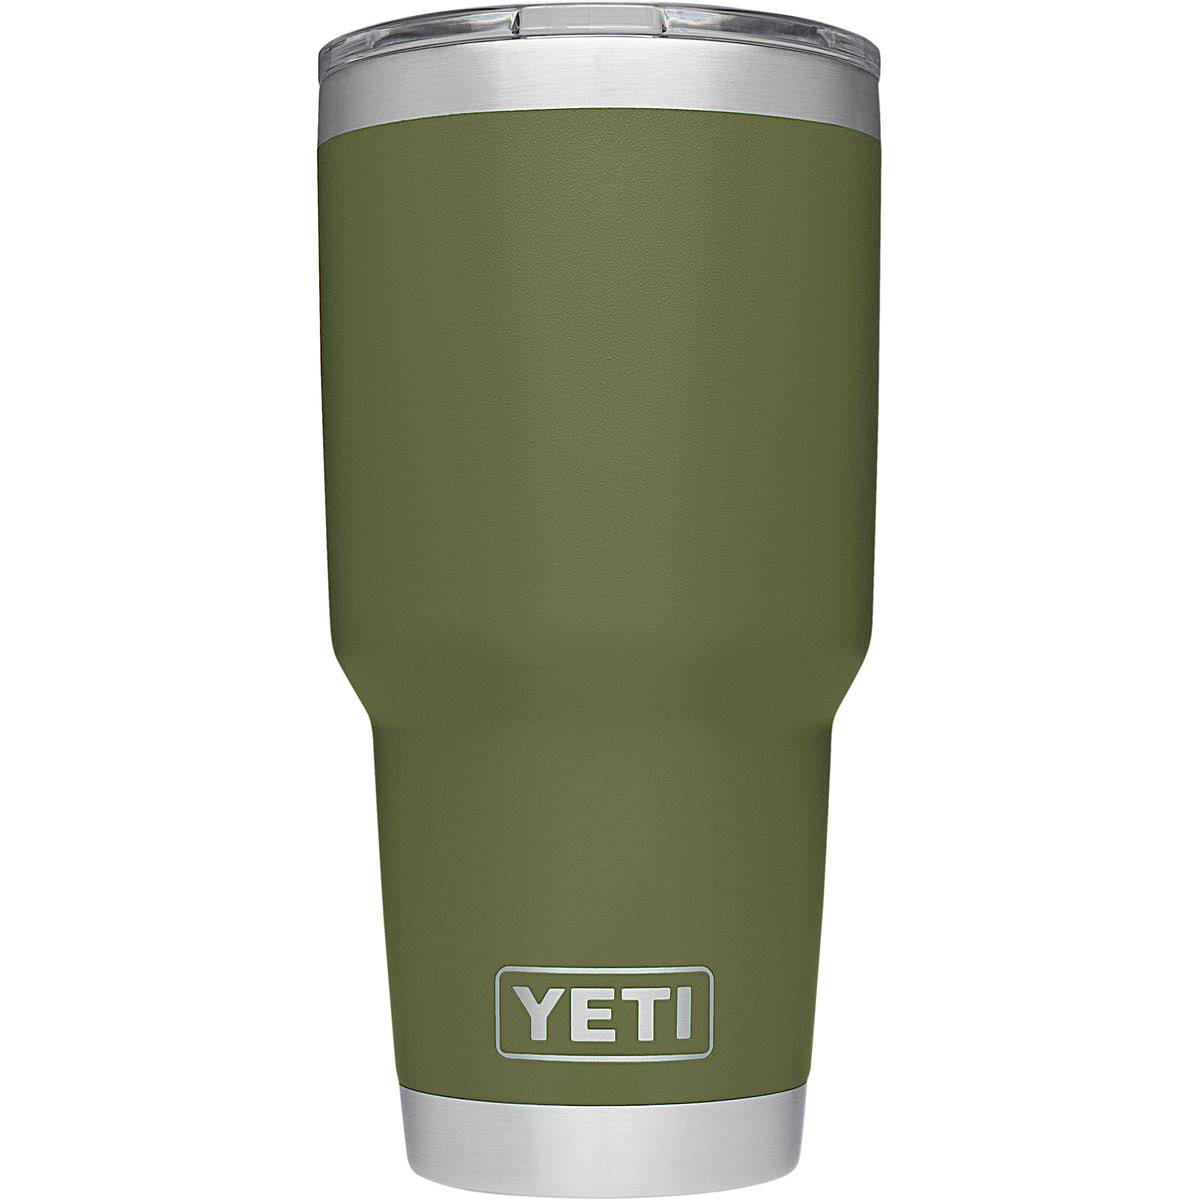 Yeti Rambler Stainless Steel Vacuum Insulated Tumbler - 30oz, with Lid